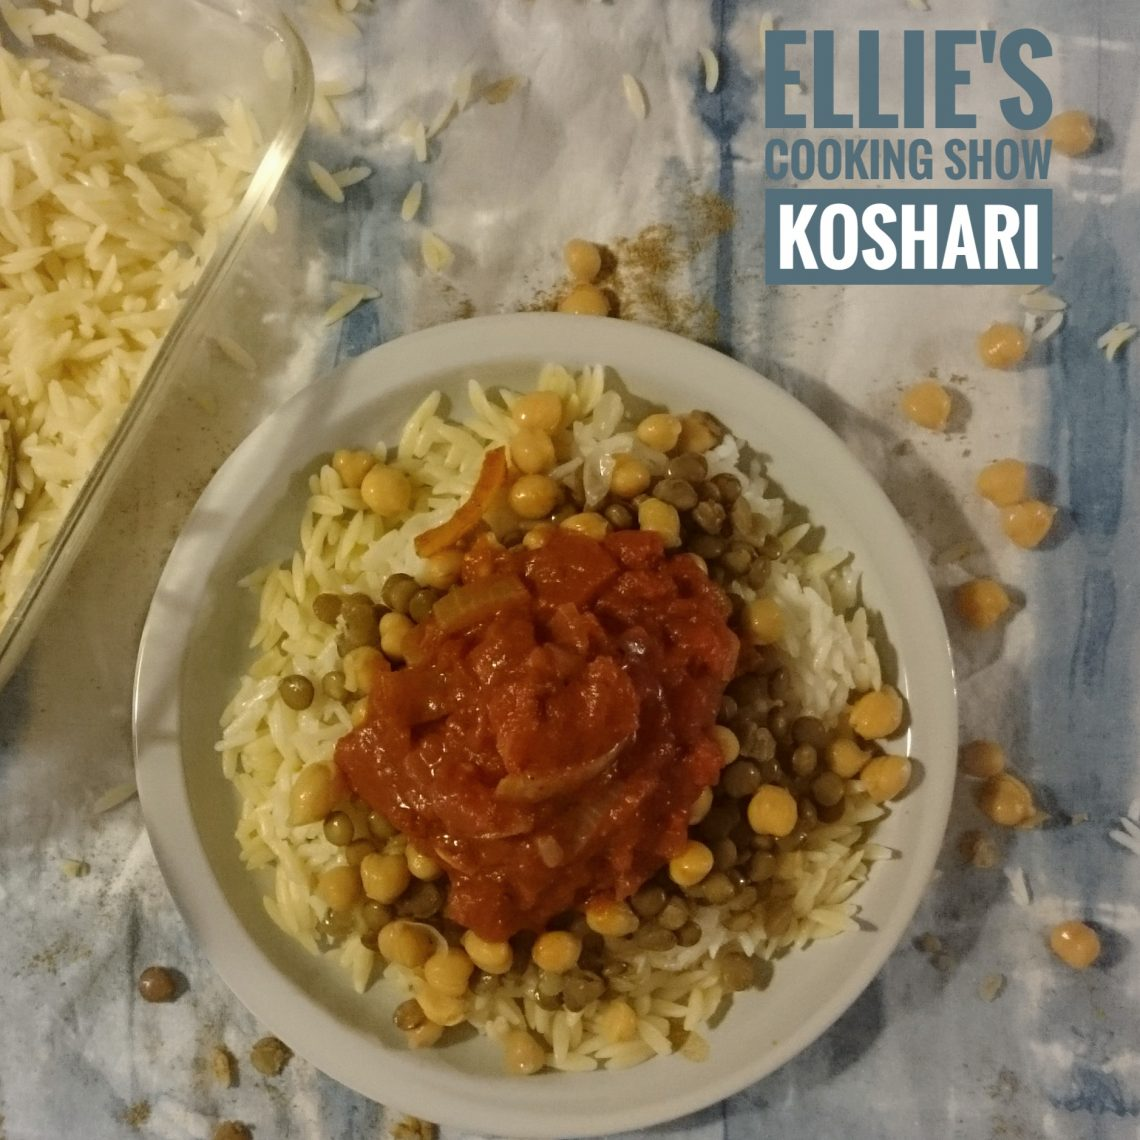 Koshari Egyptian Cuisine | Ellie's Cooking Show | Cooking with Kids | Play with Food